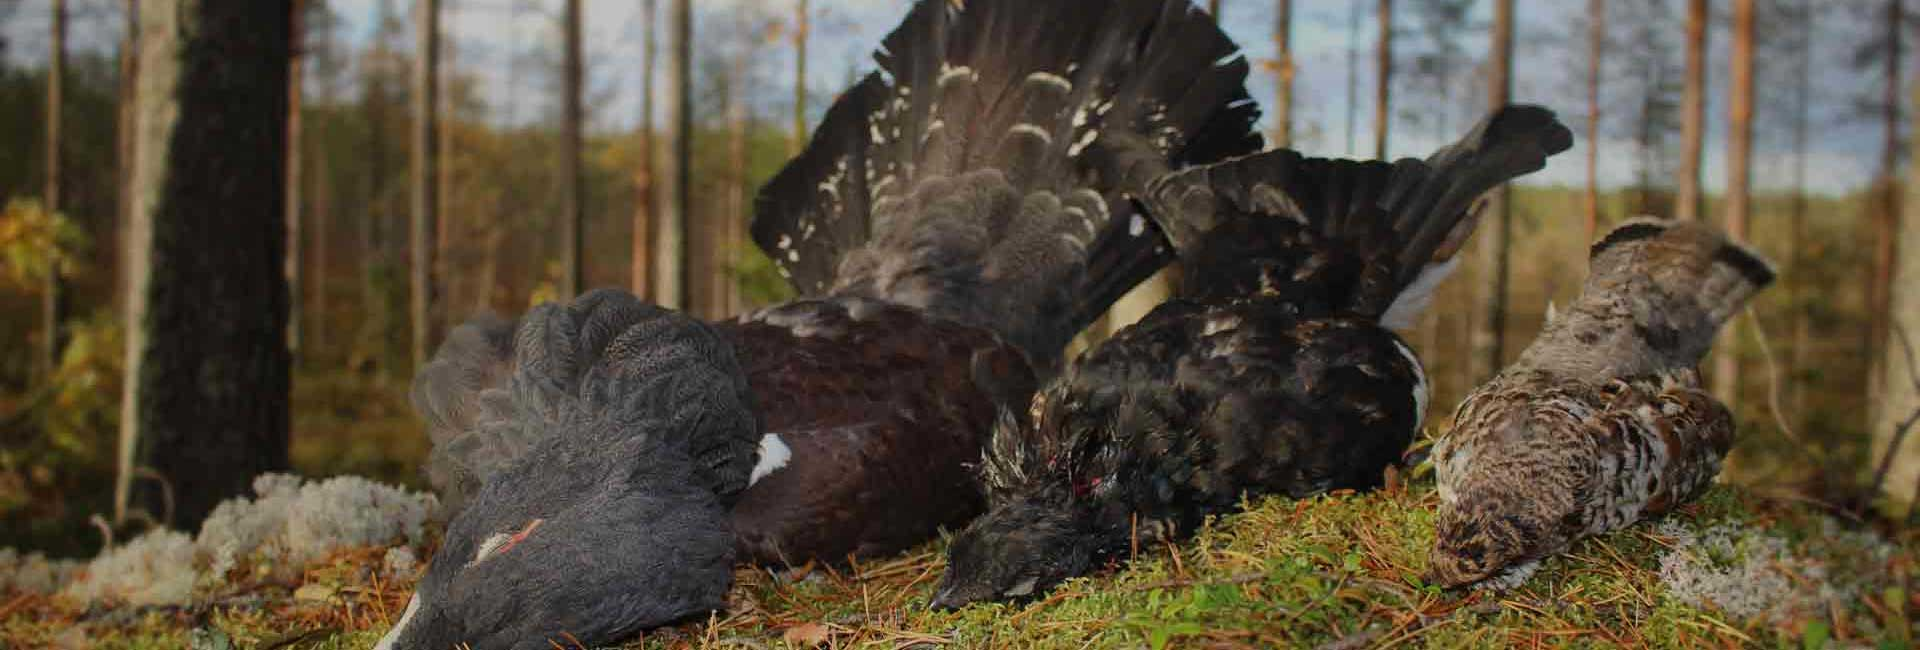 Capercaillie and grouse hunt